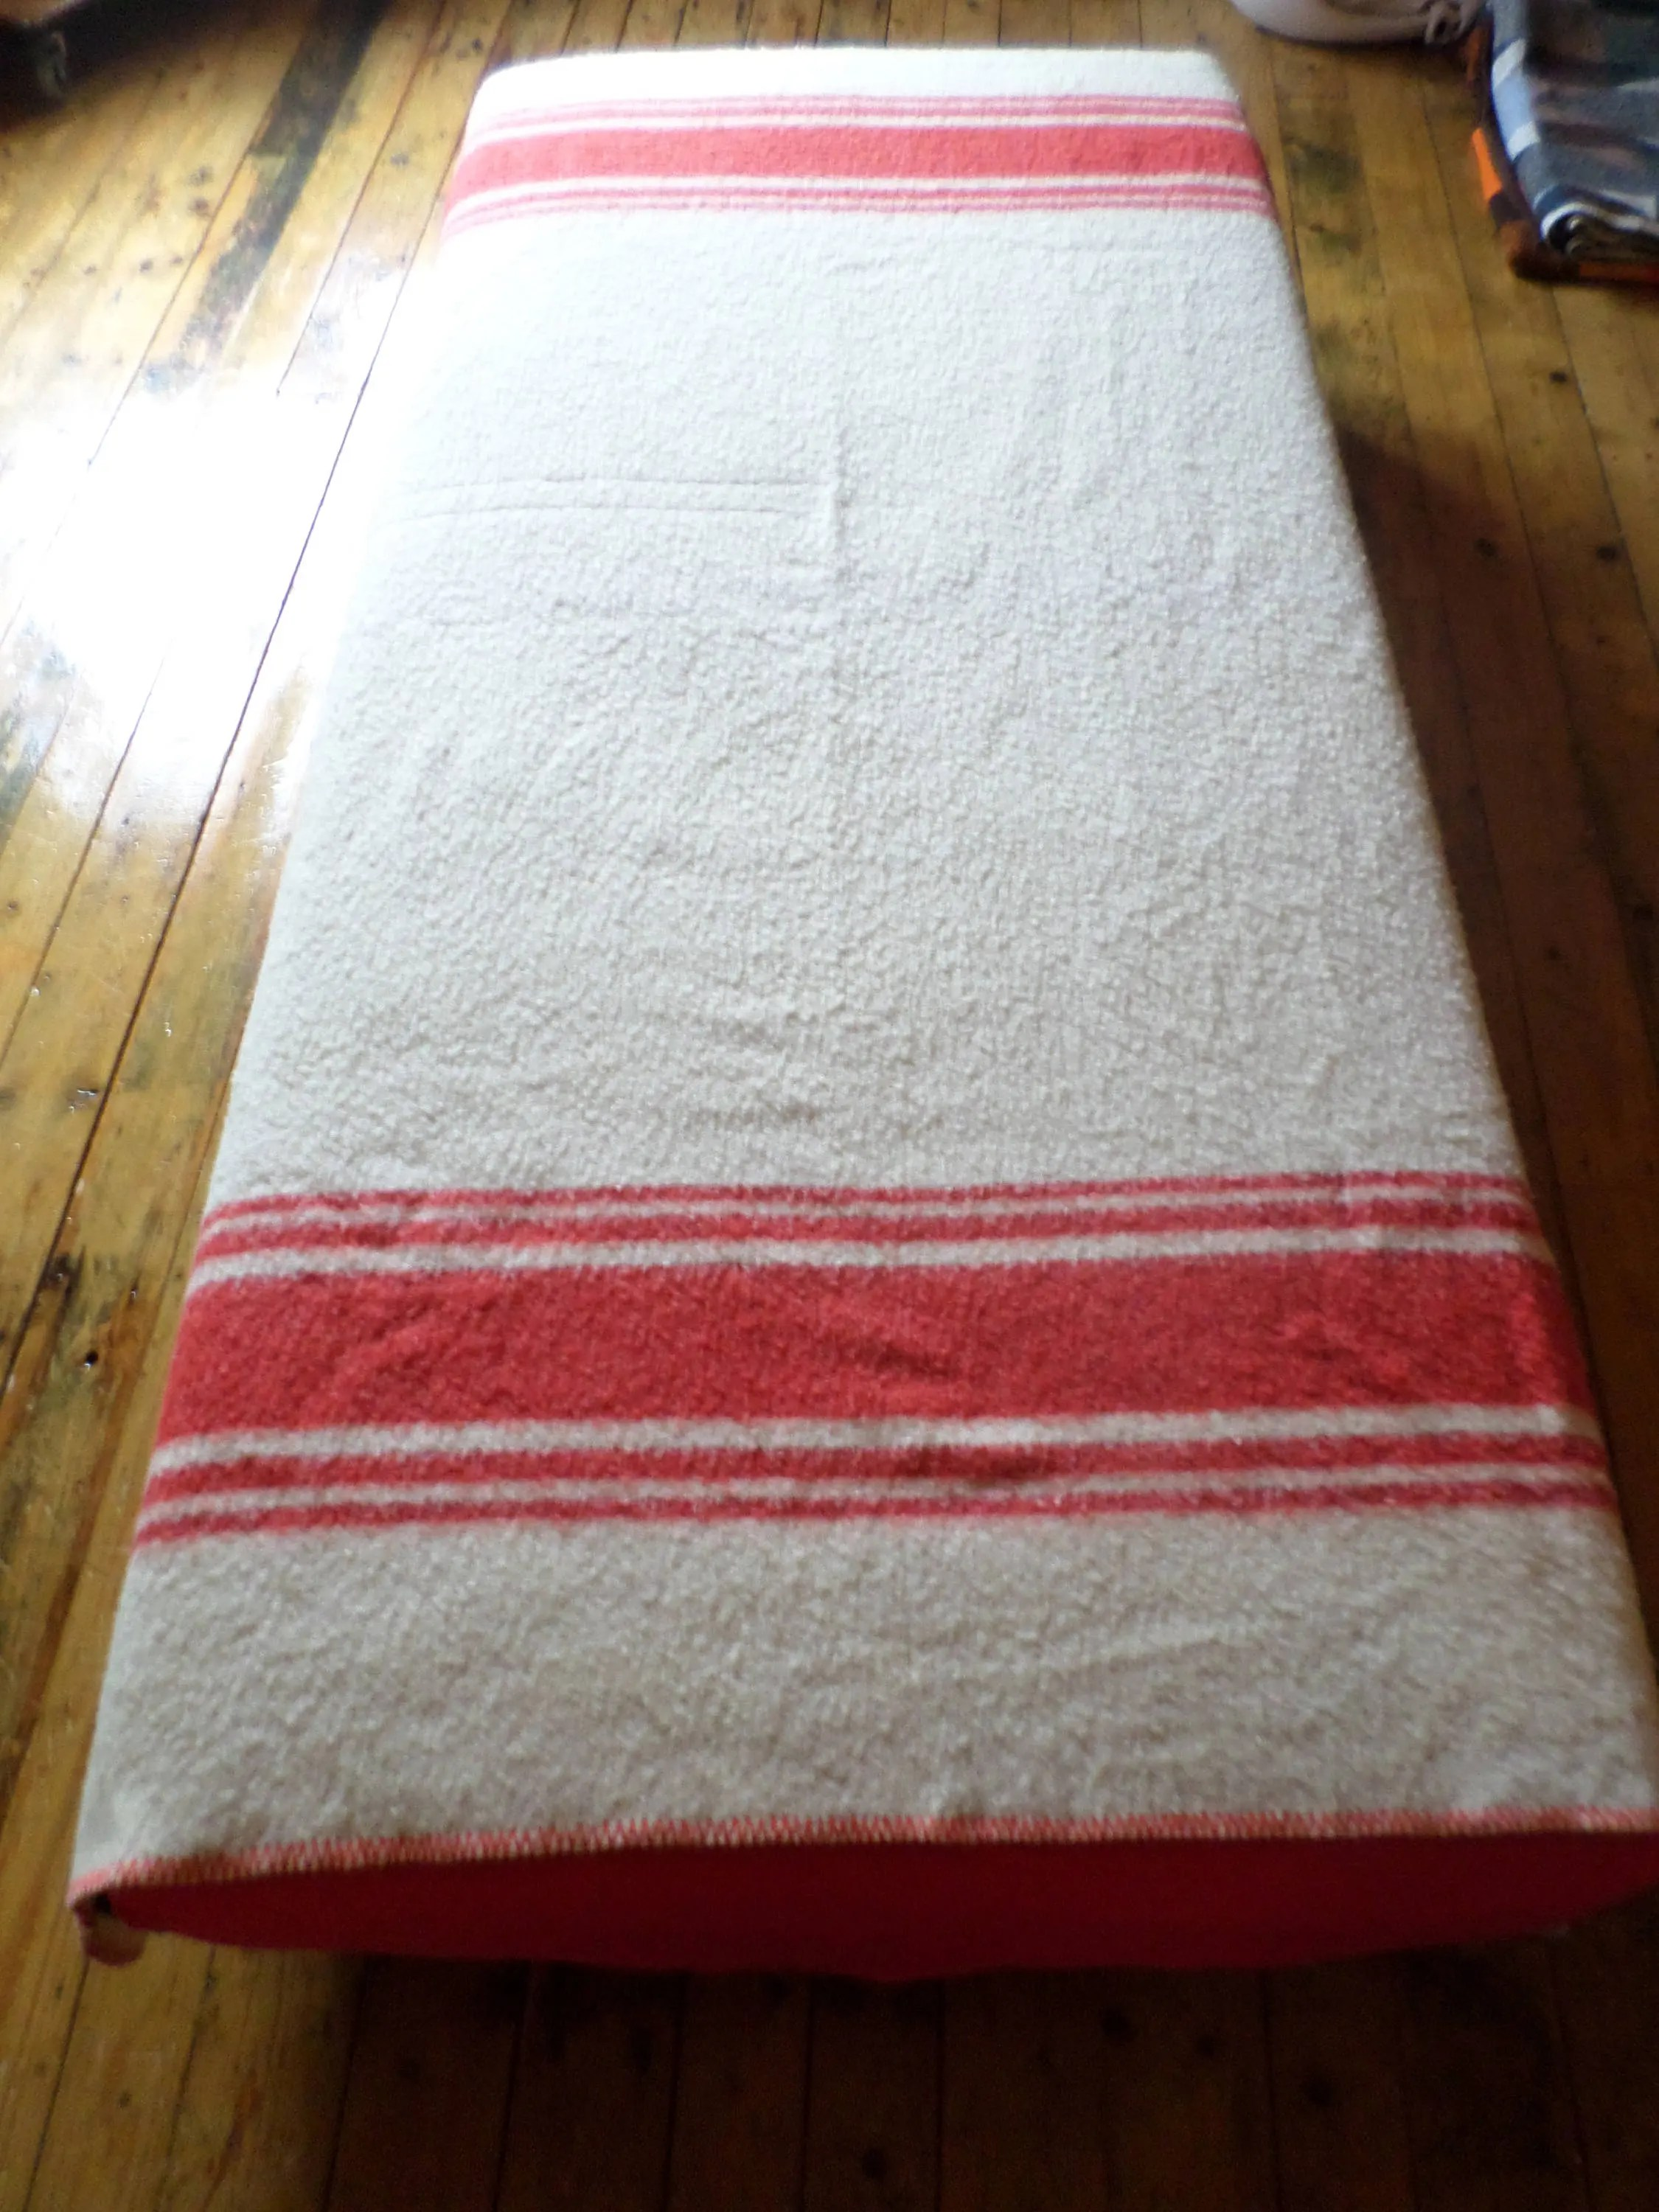 Bettdecken Holland Vintage Blanket Deken Bettdecke Couverture Pure Wool 100 Virgin Wool 1970s Throw